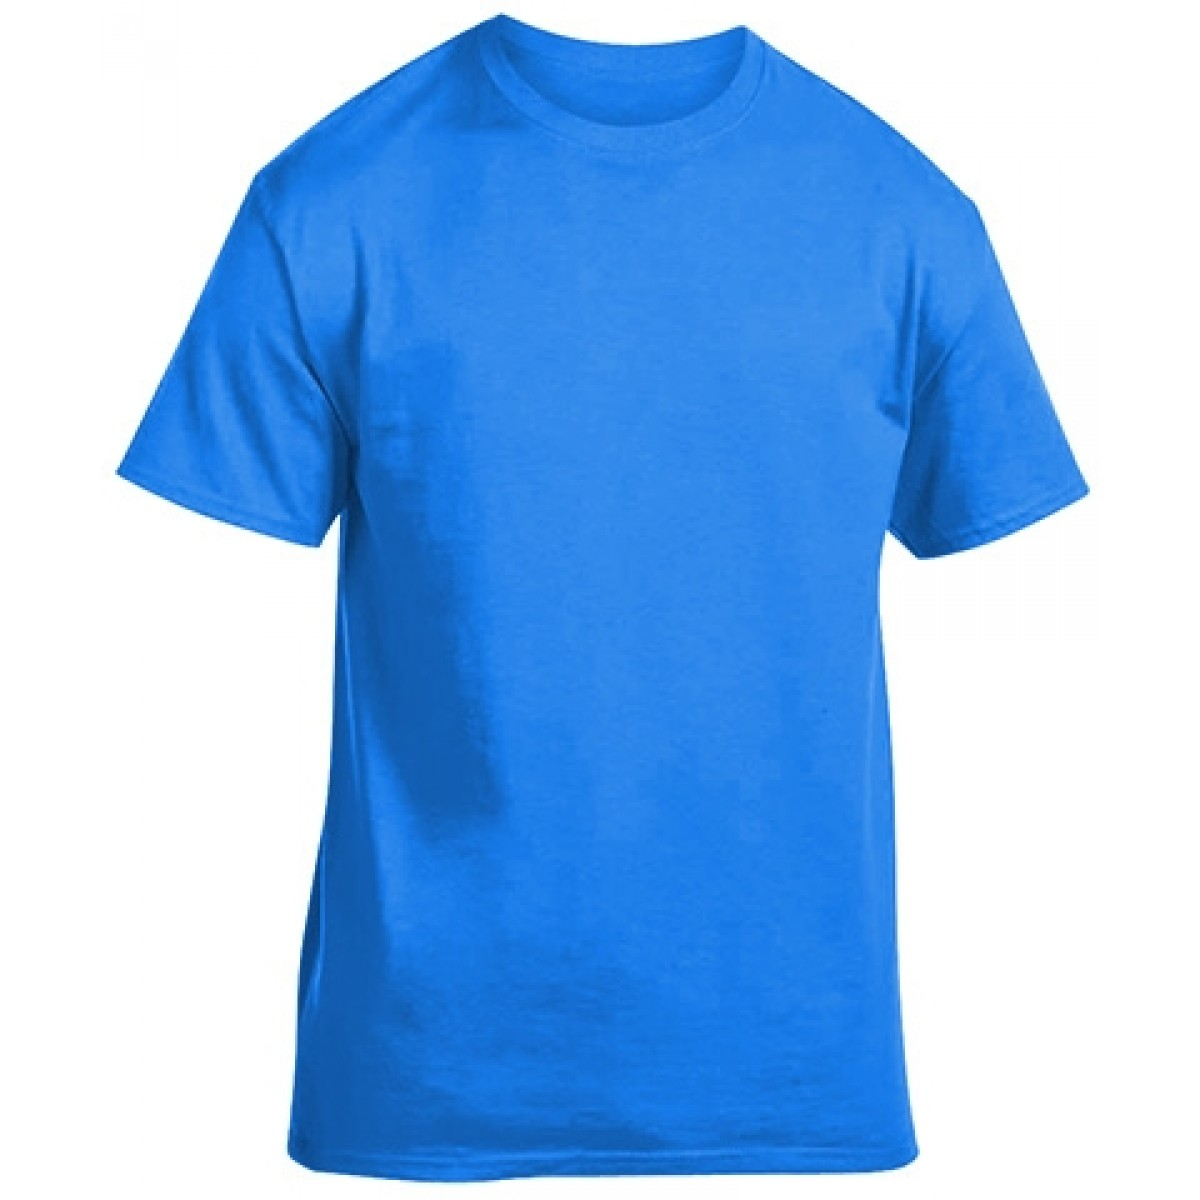 Soft 100% Cotton T-Shirt-Neon Blue-YL